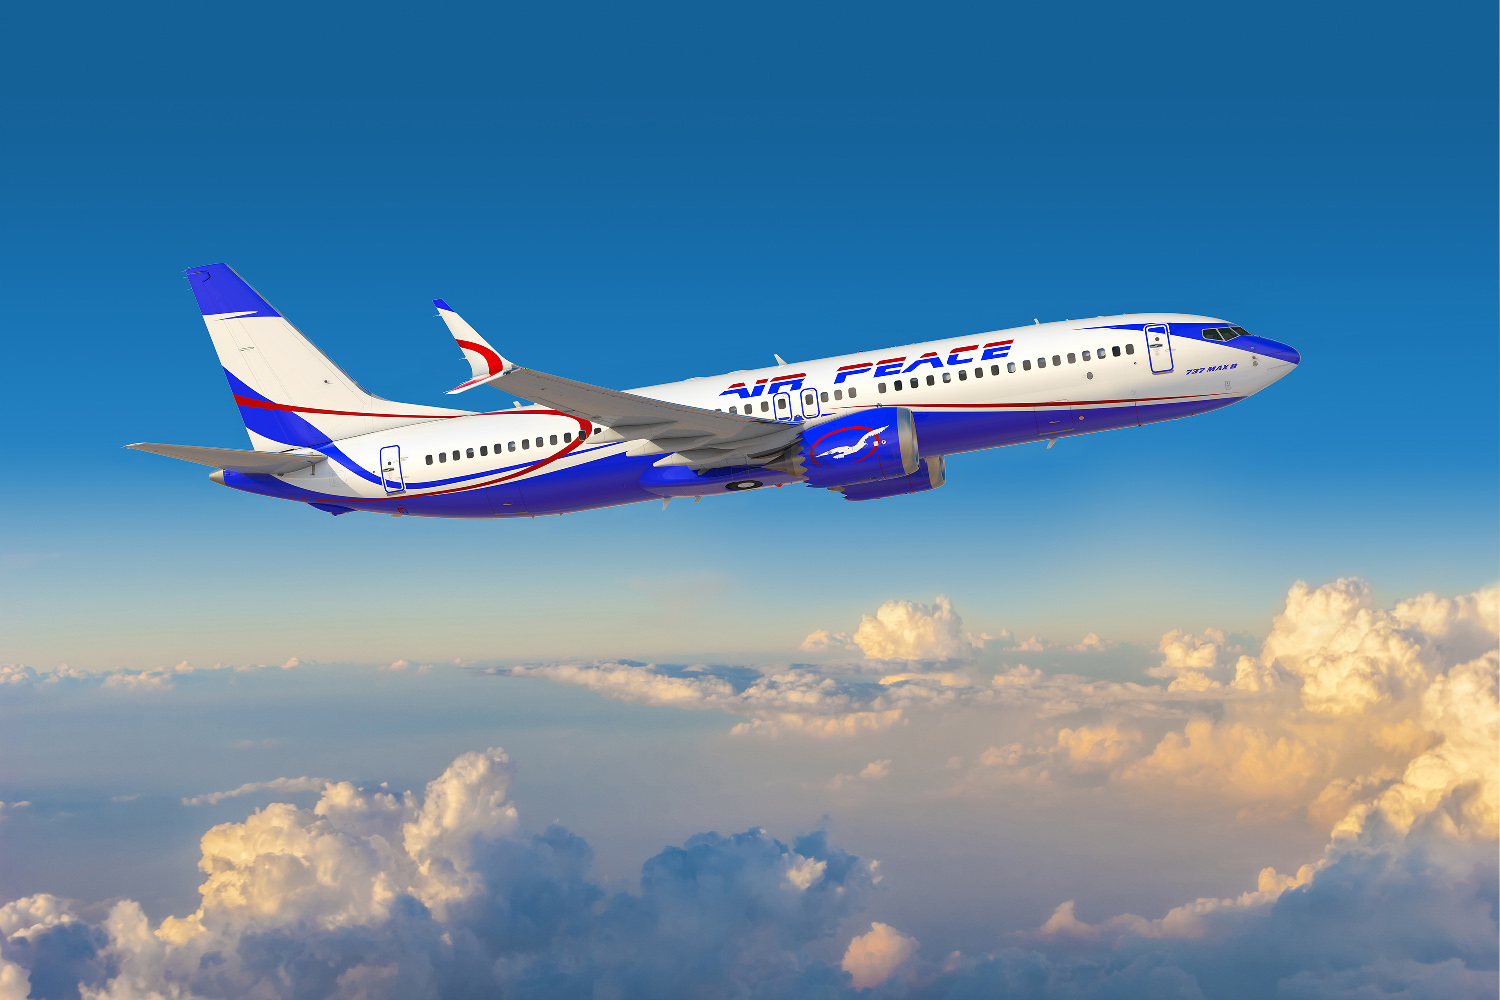 Boeing announces another order for the fastest selling plane in their history